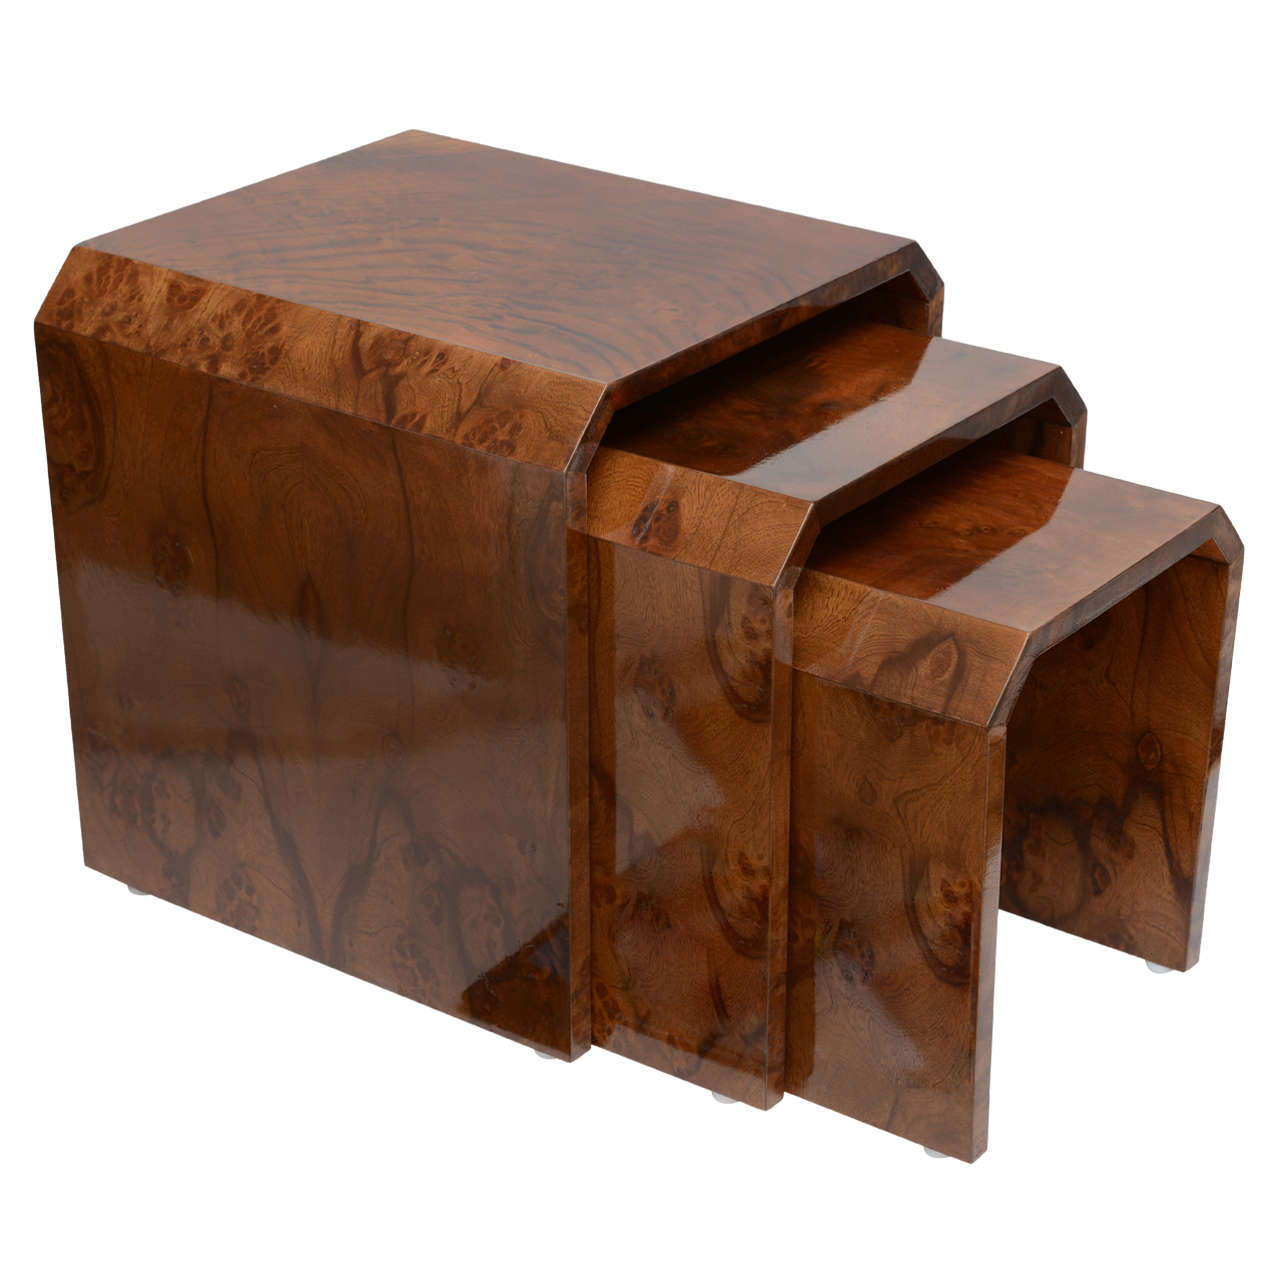 Tommaso Barbi Burl Wood Nesting Tables At 1stdibs. Full resolution  portraiture, nominally Width 1280 Height 1280 pixels, portraiture with #44200D.